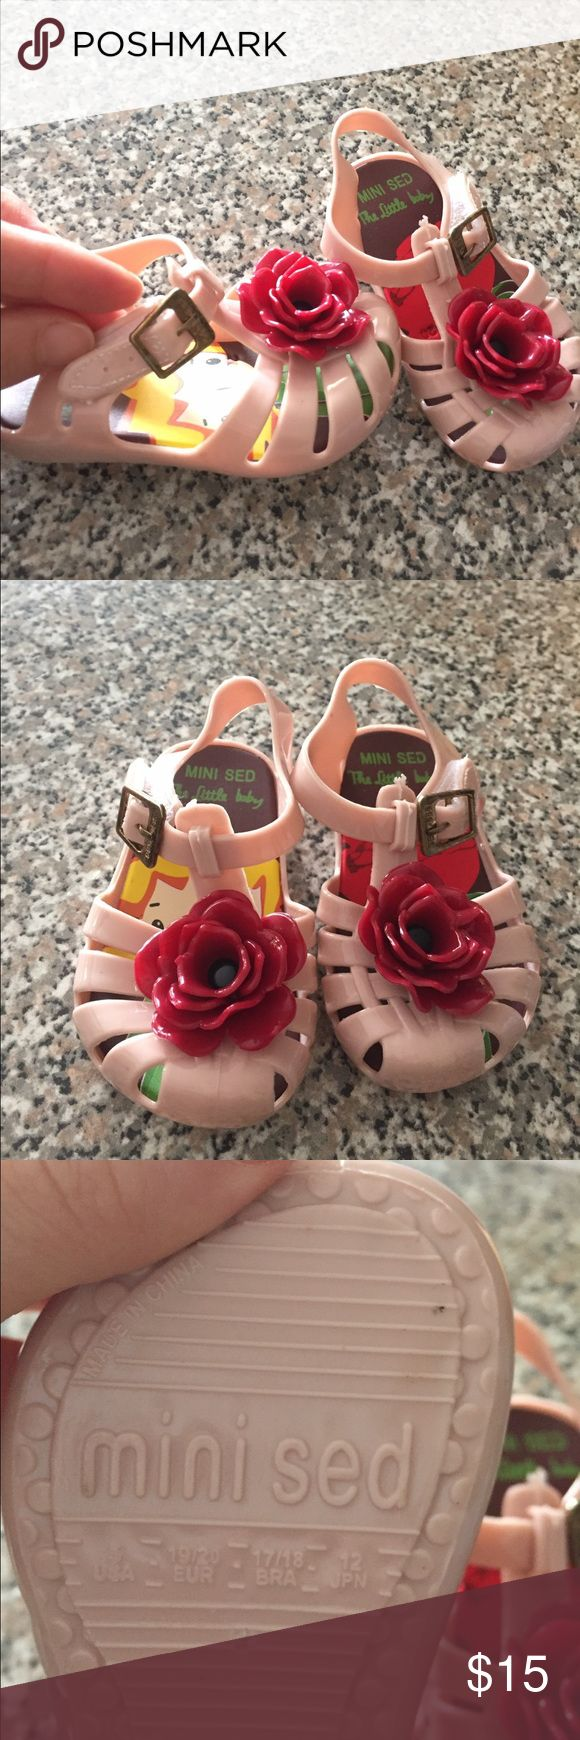 Size 5 mini Melissa imitation Never use these shoes I got them for my baby and they run a bit smaller than I expected.  They are super high-quality comfortable imitation of mini Melissa Shoes. Perfect for dressing up or casual outings for a little walker. Shoes Sandals & Flip Flops